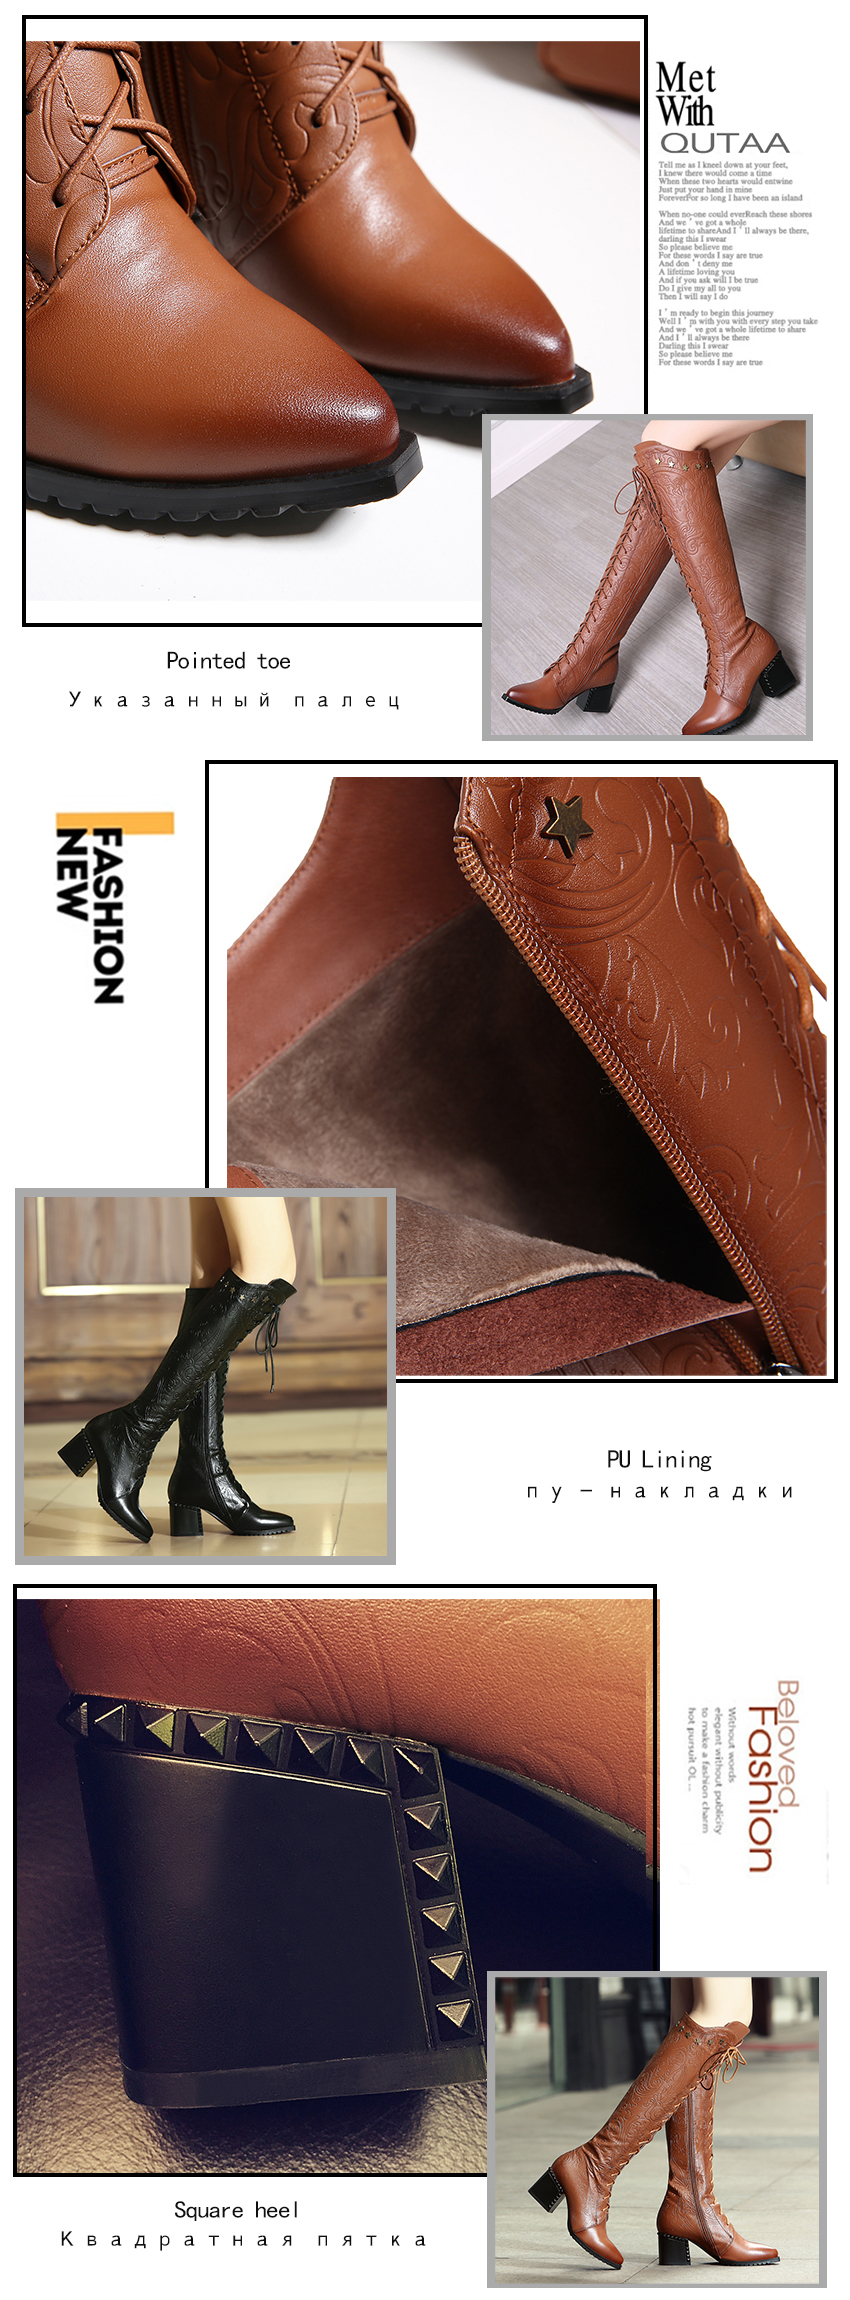 2018 Women's Over The Knee High Boots, Cow Leather, Fashion Lace Up Pointed Toe 14